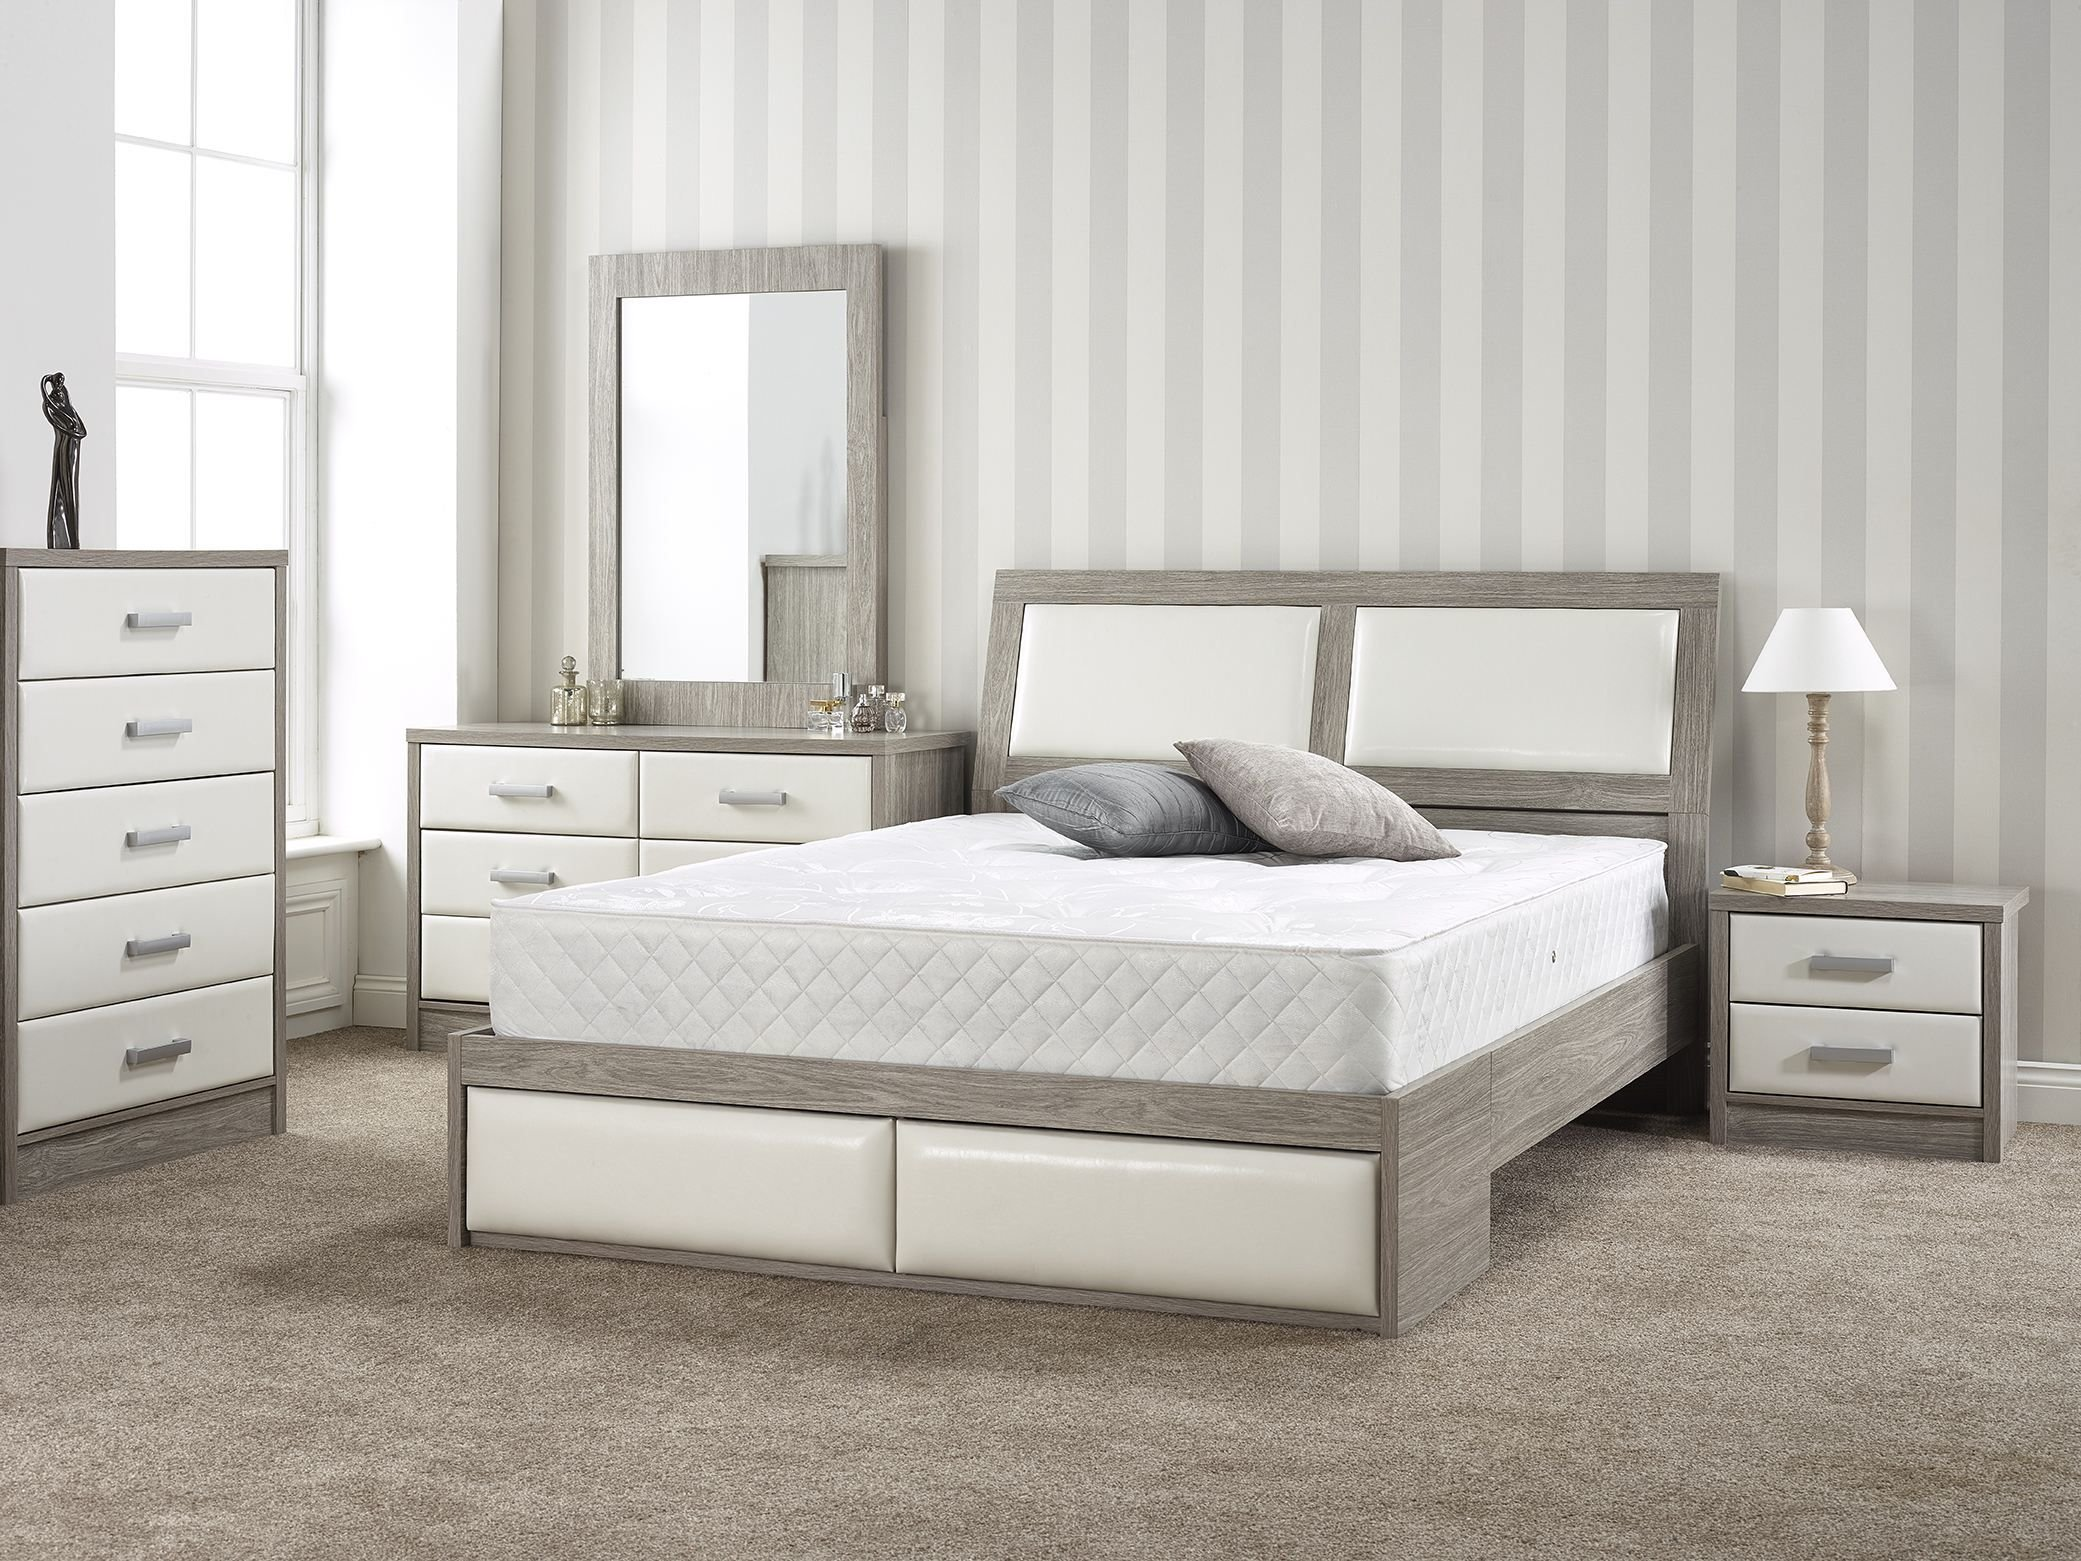 Best The Italian Furniture Company Leeds Ltd Importers And With Pictures